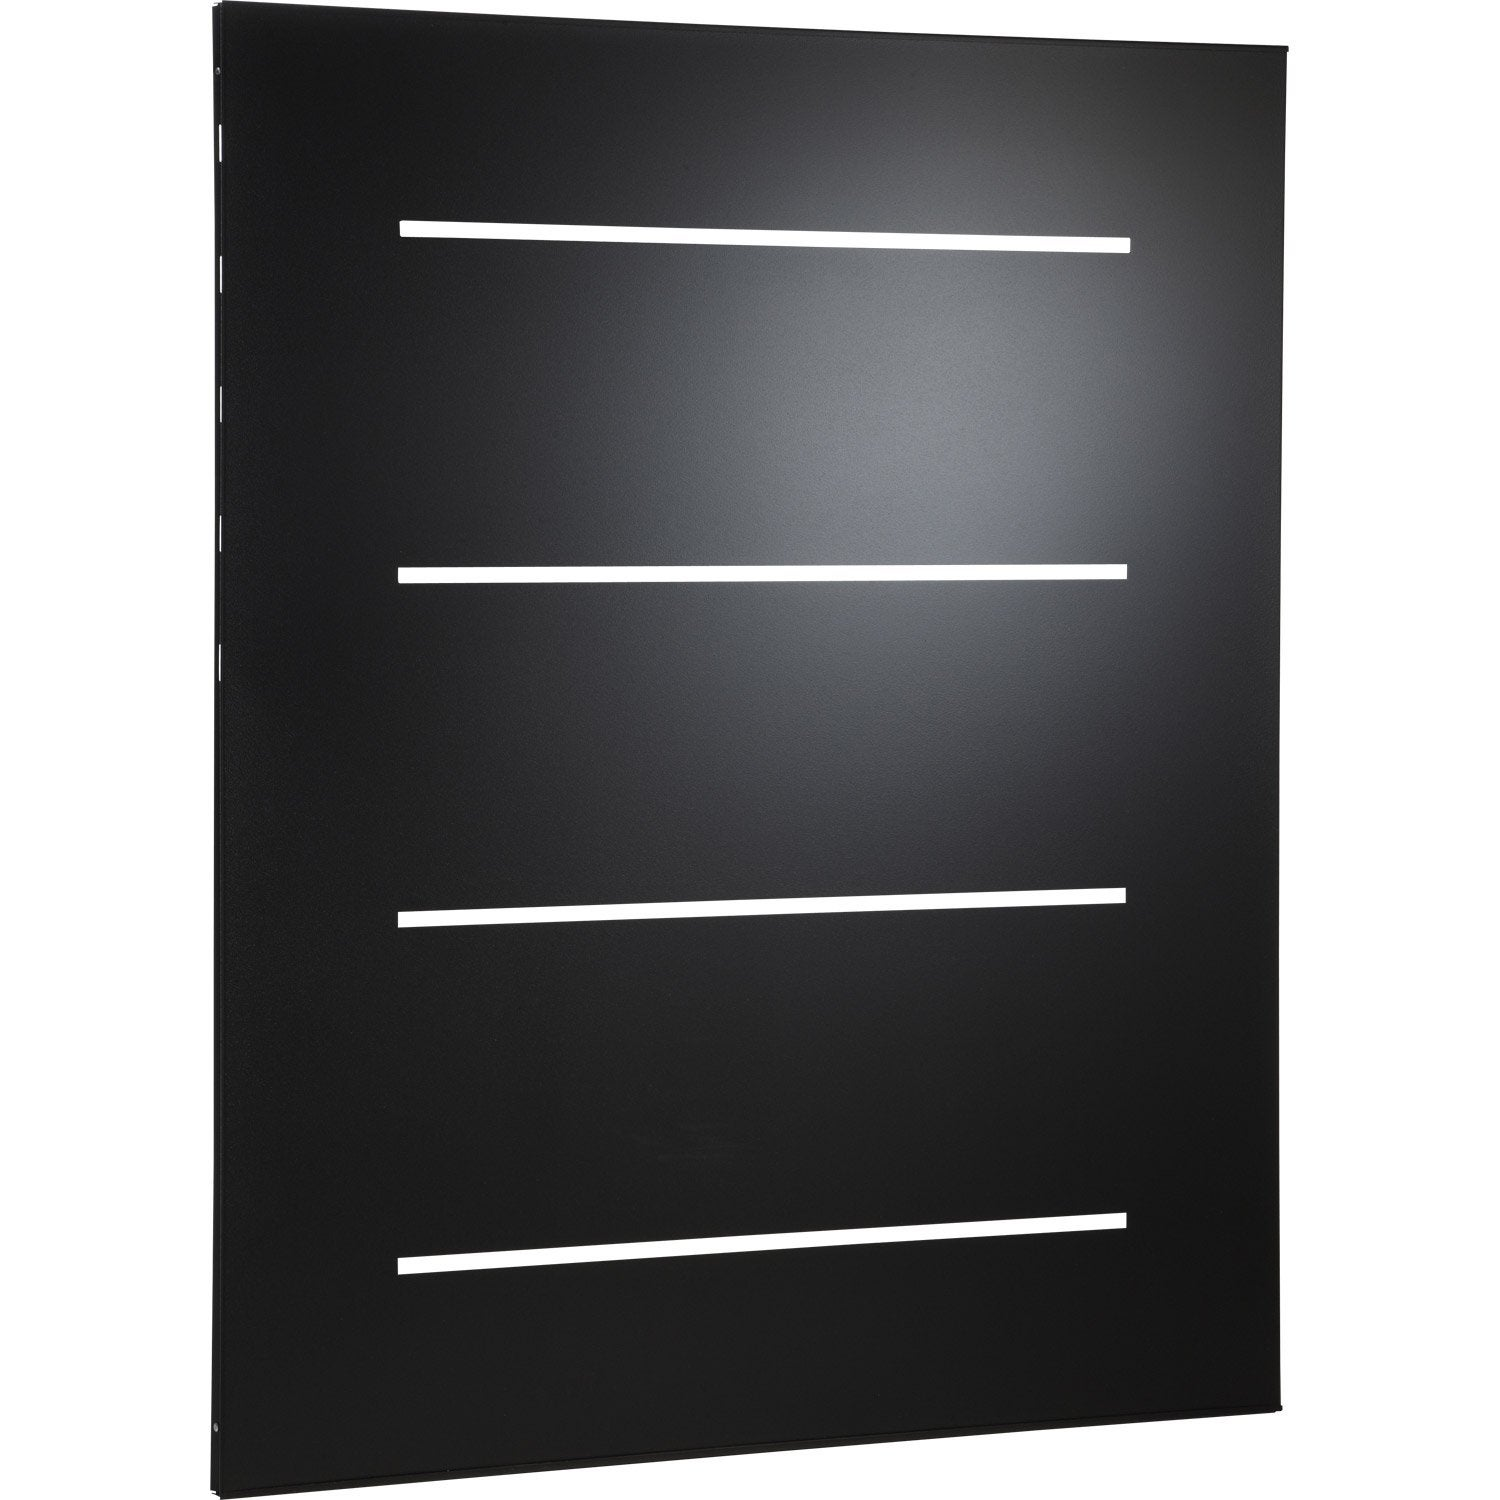 plaque isolante thermique. Black Bedroom Furniture Sets. Home Design Ideas